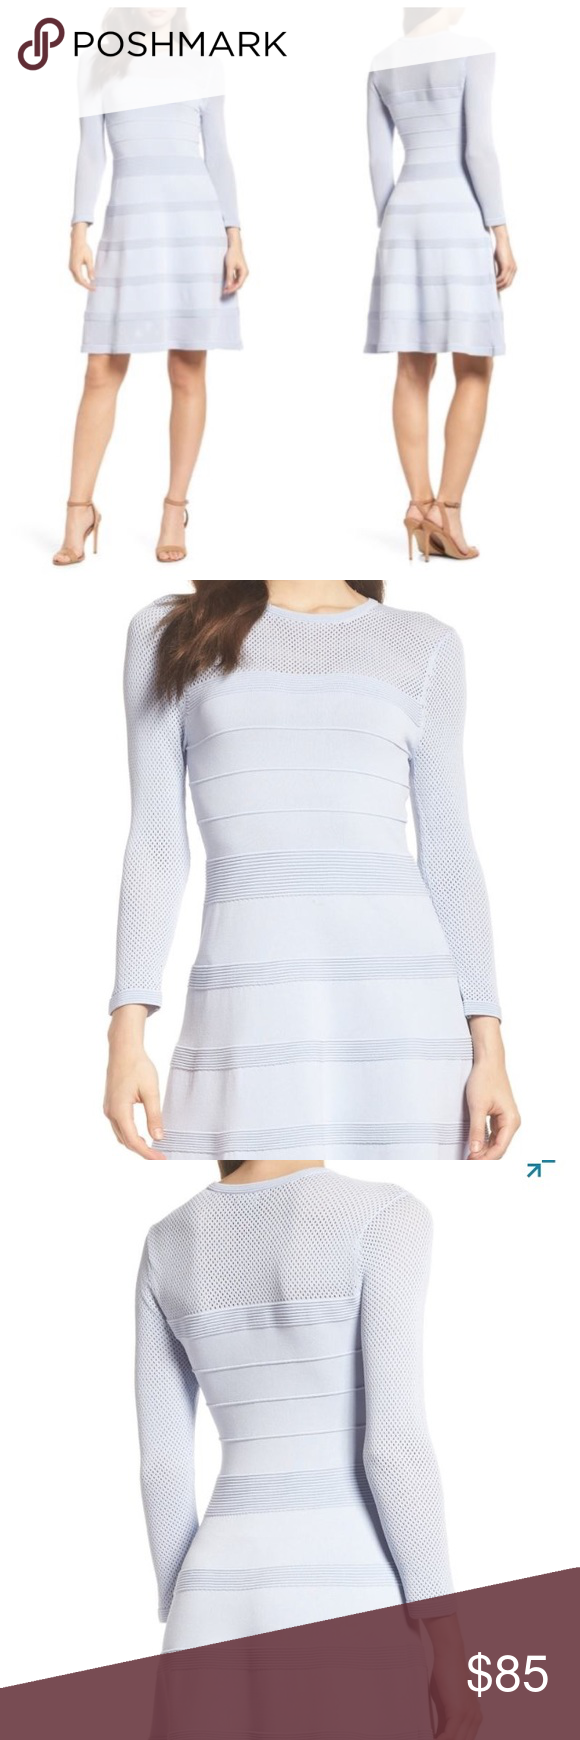 Vince Camuto Mix Stitch Pointelle Dress New Airy open stitching and  textured stripes lend eye- 5664cd405